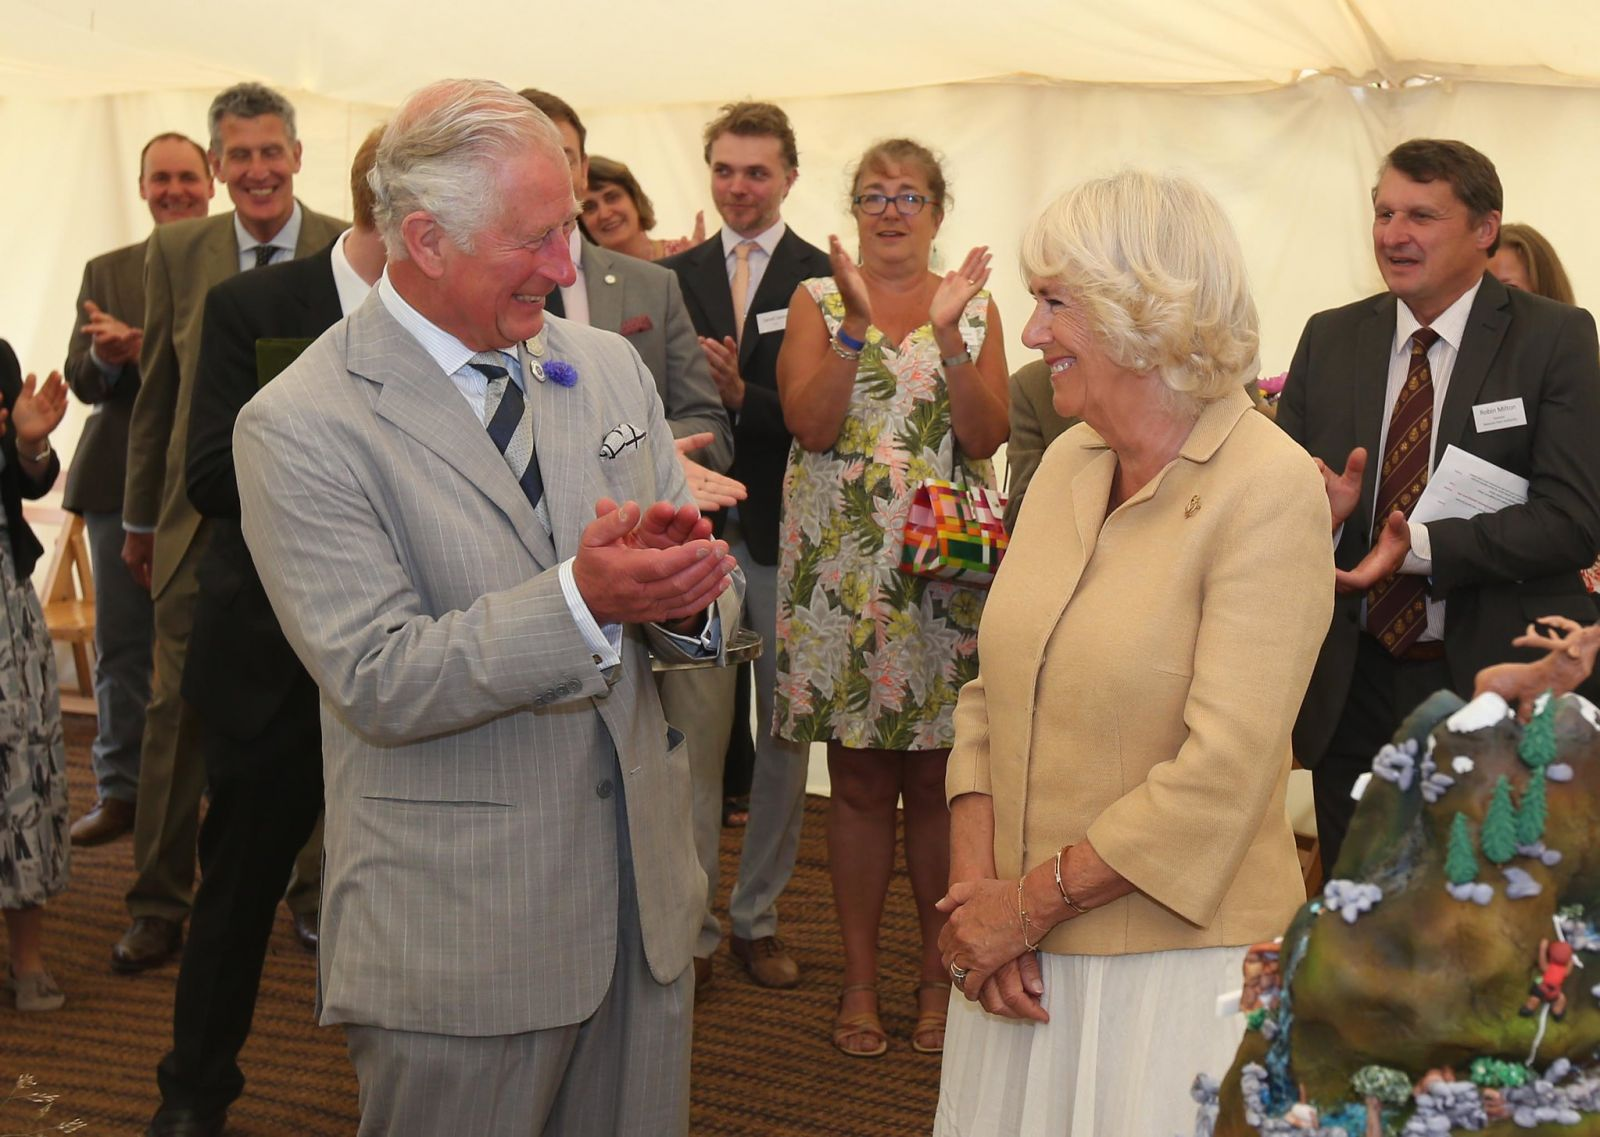 HRH Prince of Wales and the Duchess of Cornwall